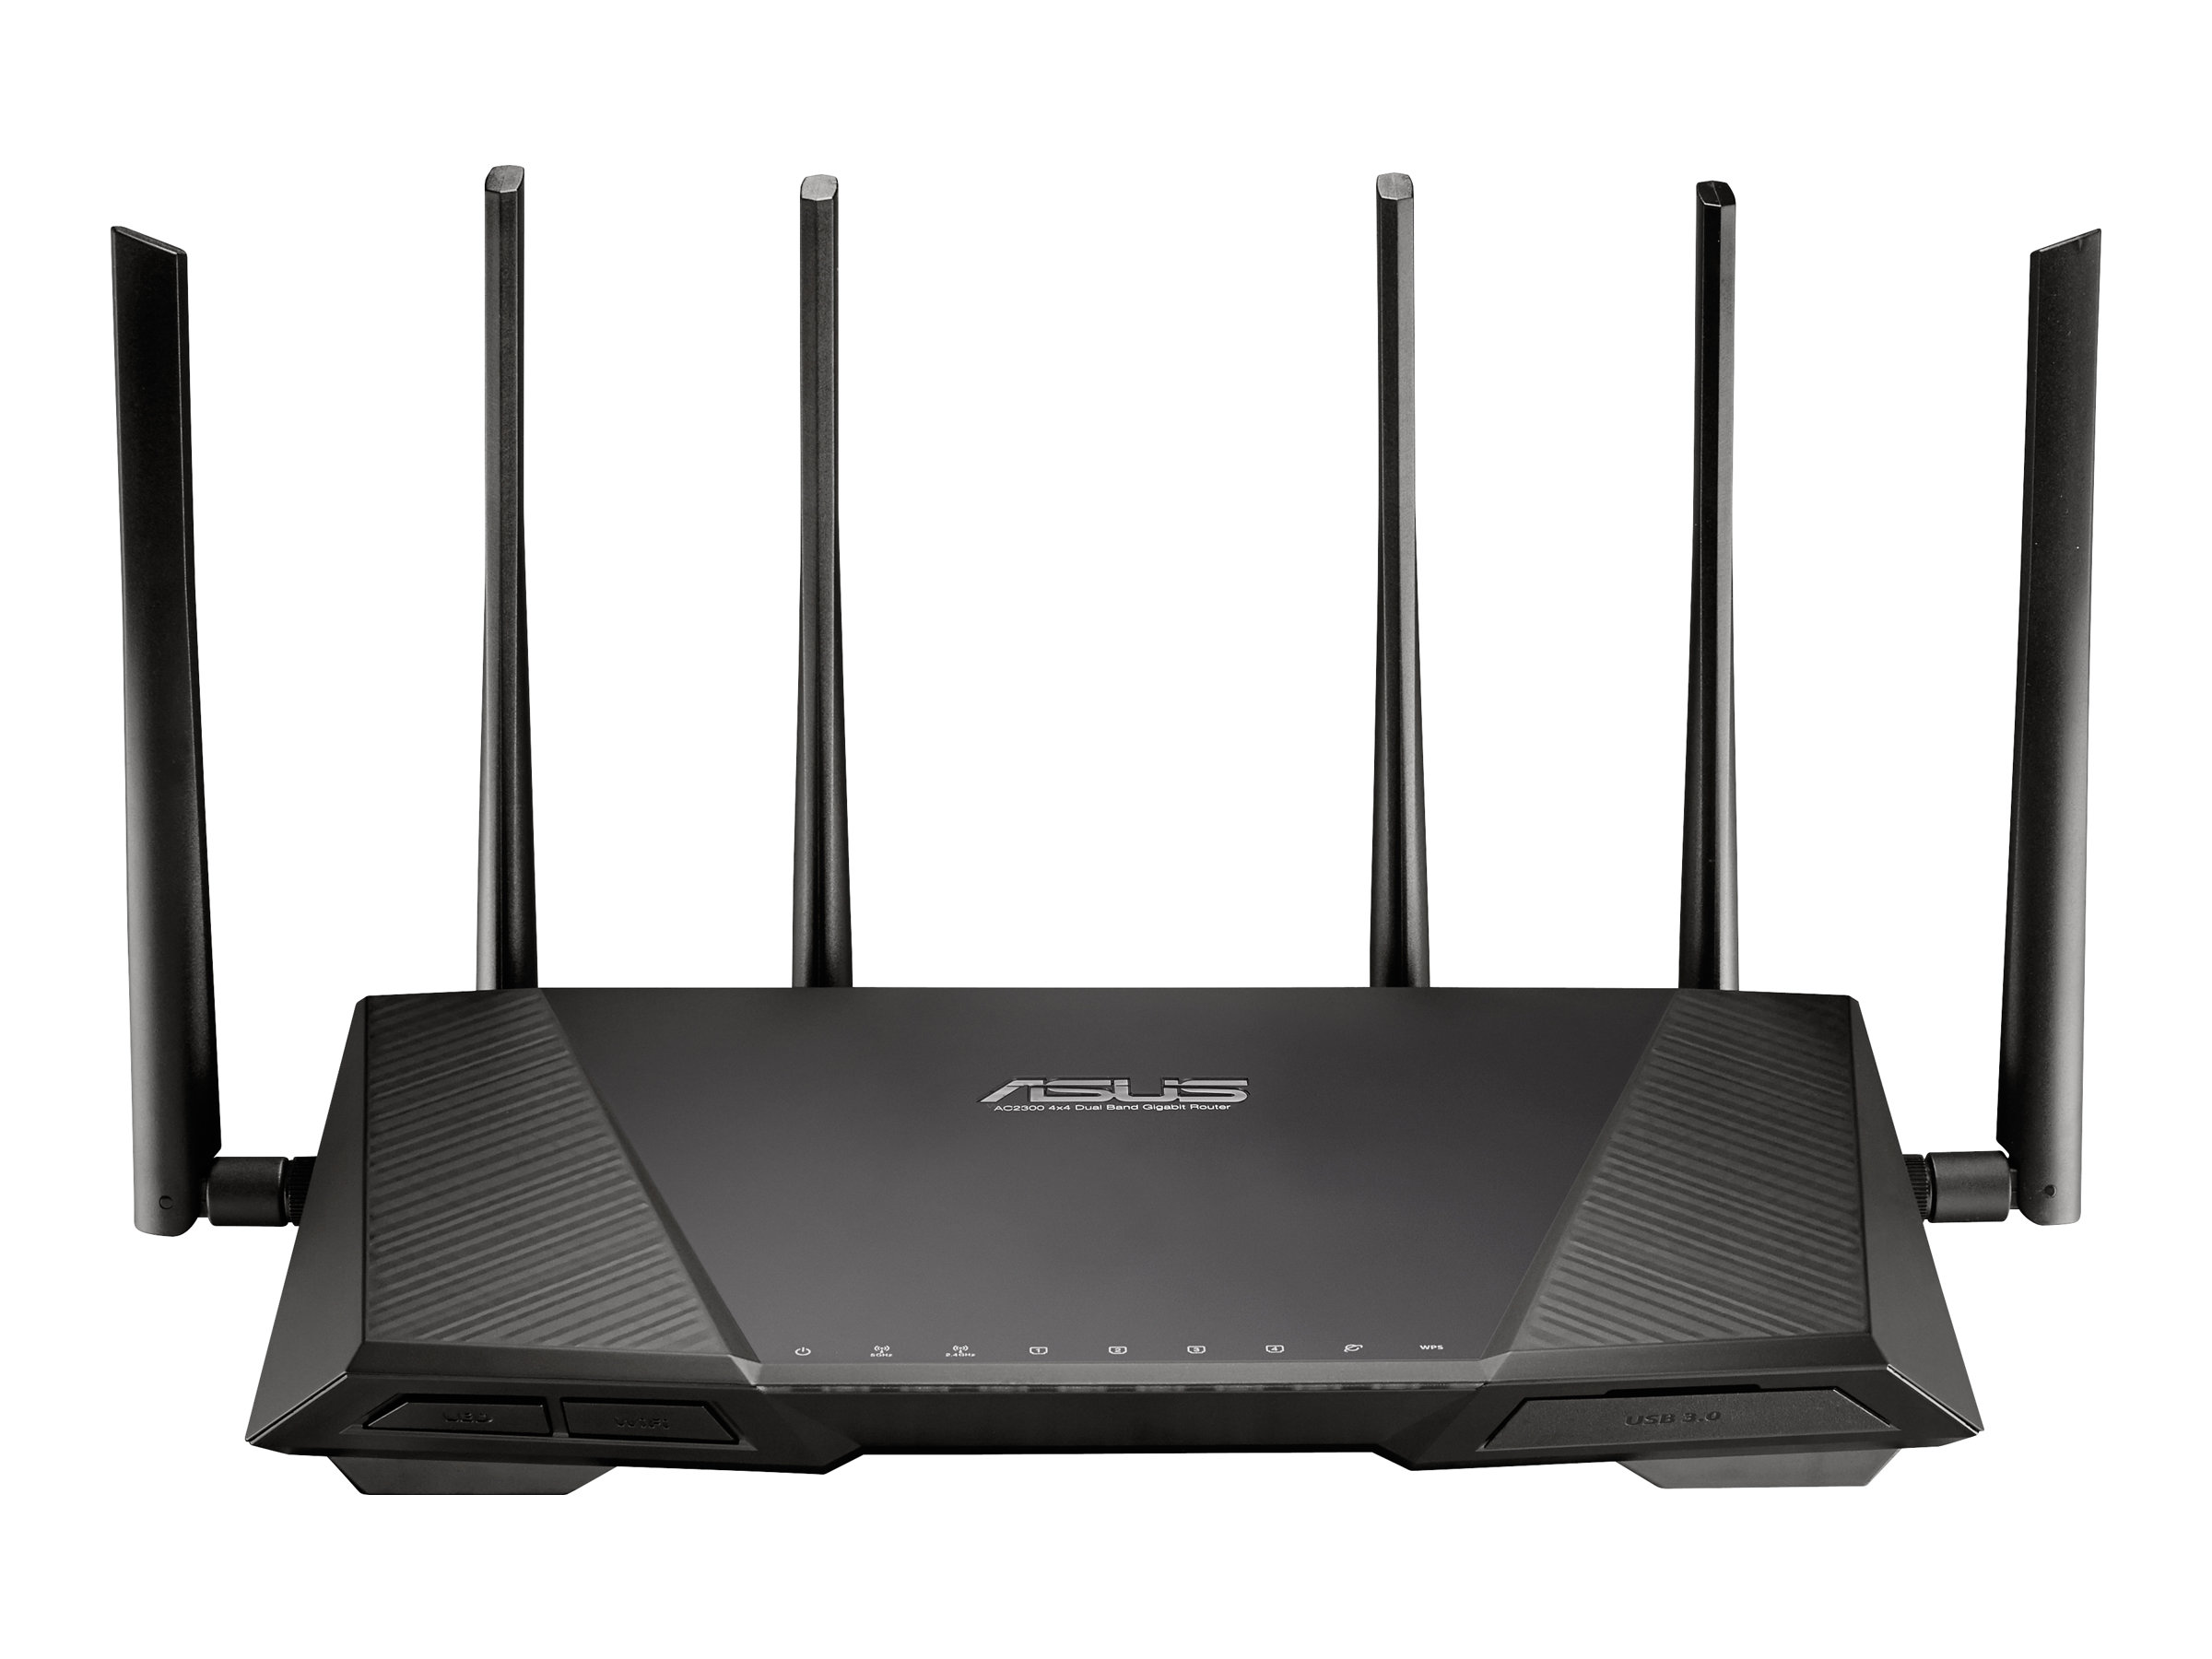 Image for Asus - Wireless Router - 802.11A/B/G/N/Ac - Desktop from Circuit City